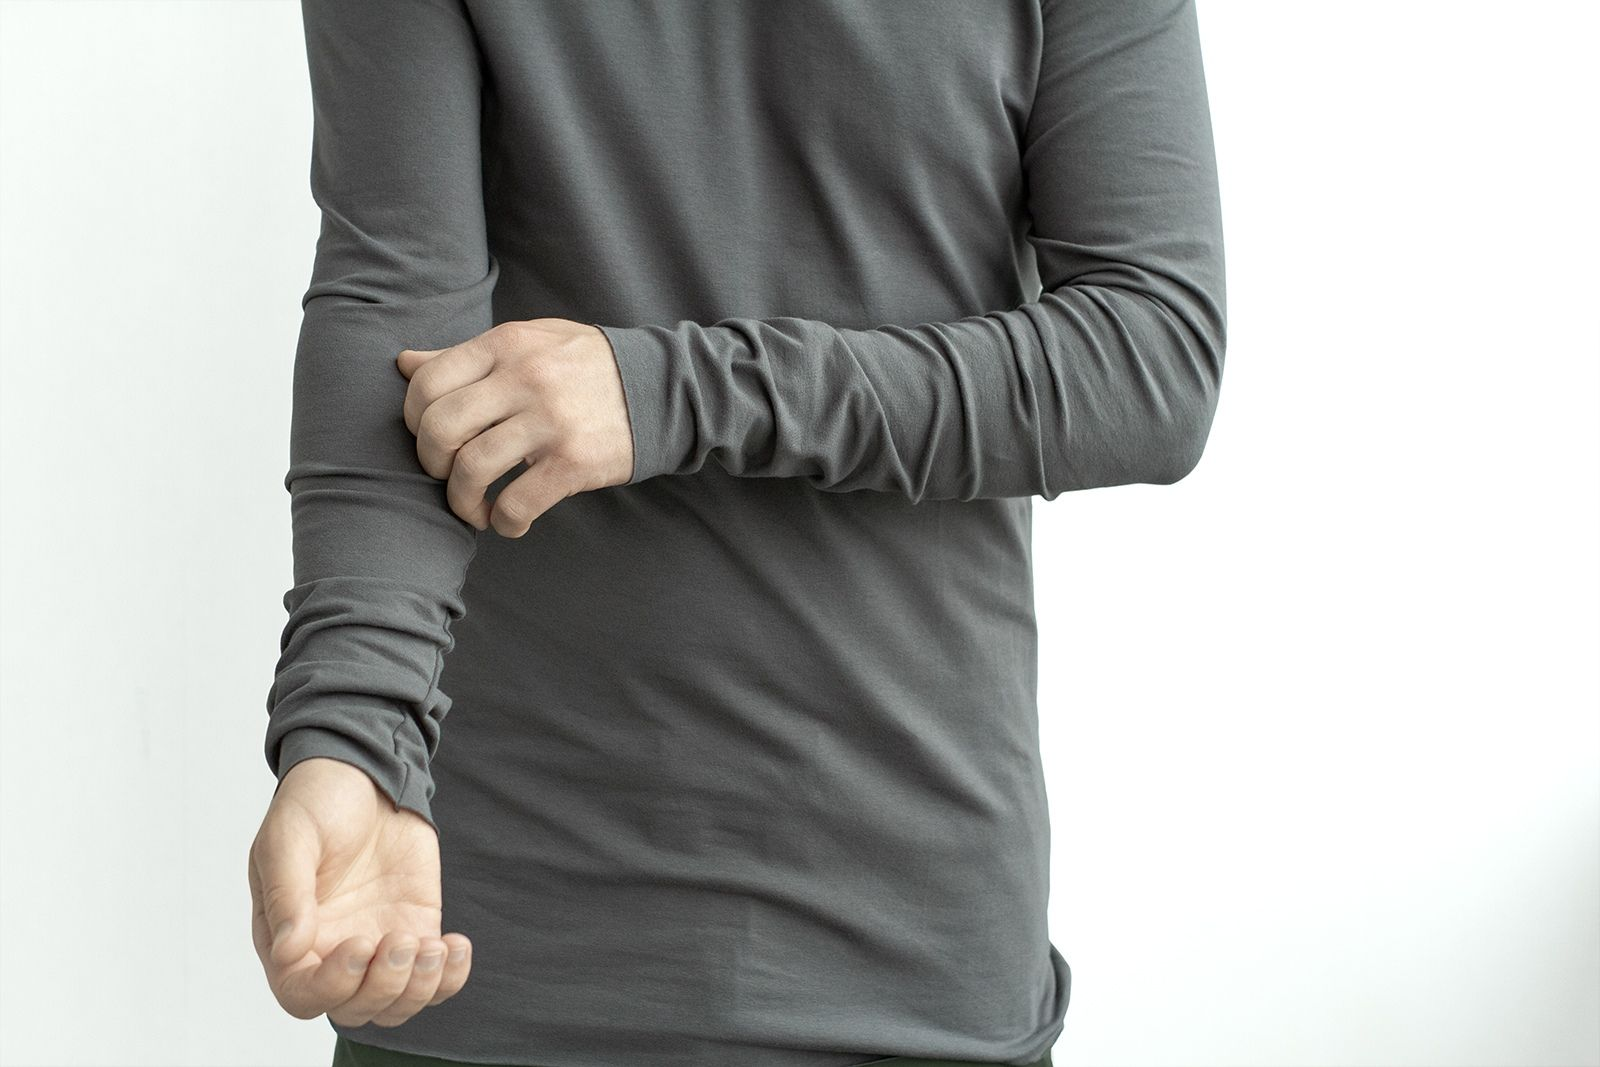 Base non-branding longsleeve in dark gray